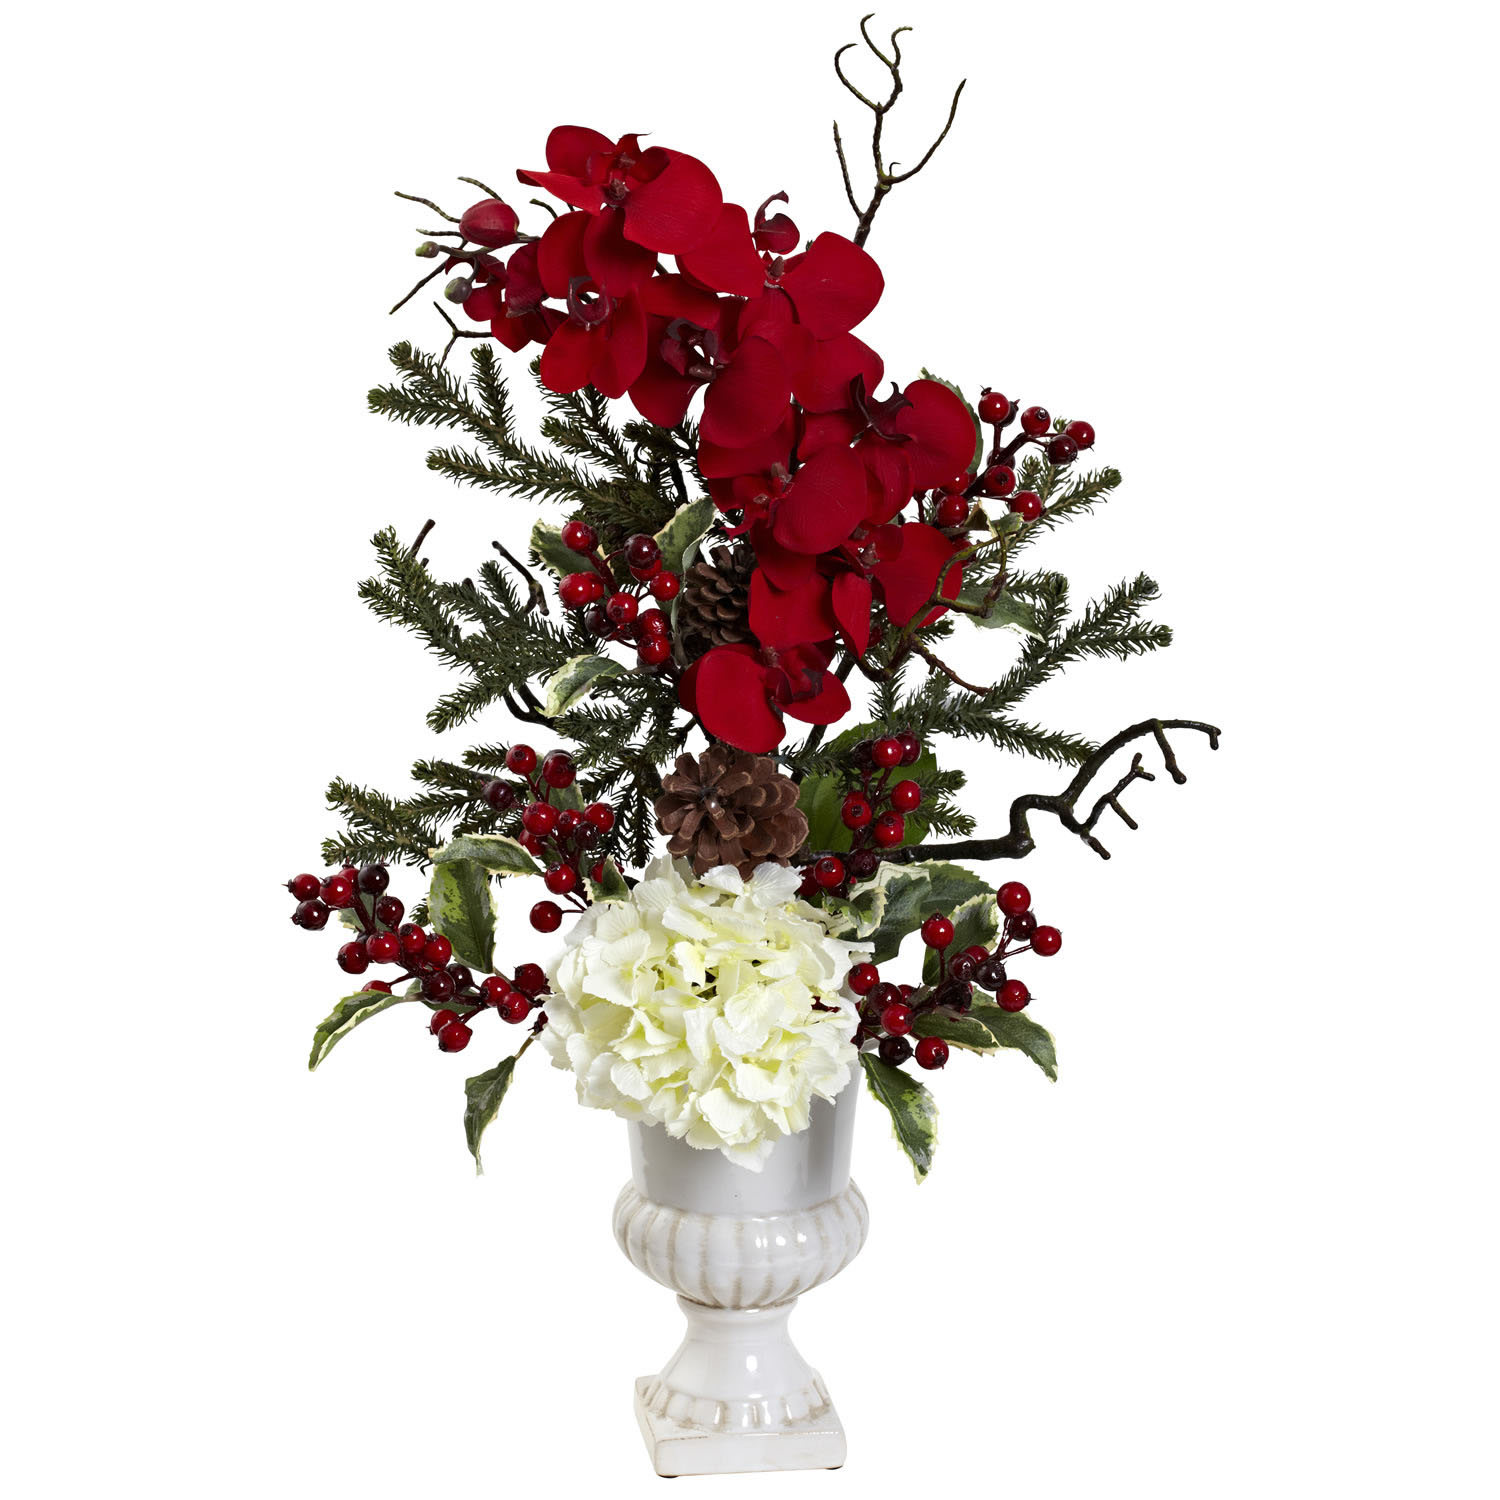 27 inch holly berry orchid hydrangea pine holiday Christmas orchid arrangements